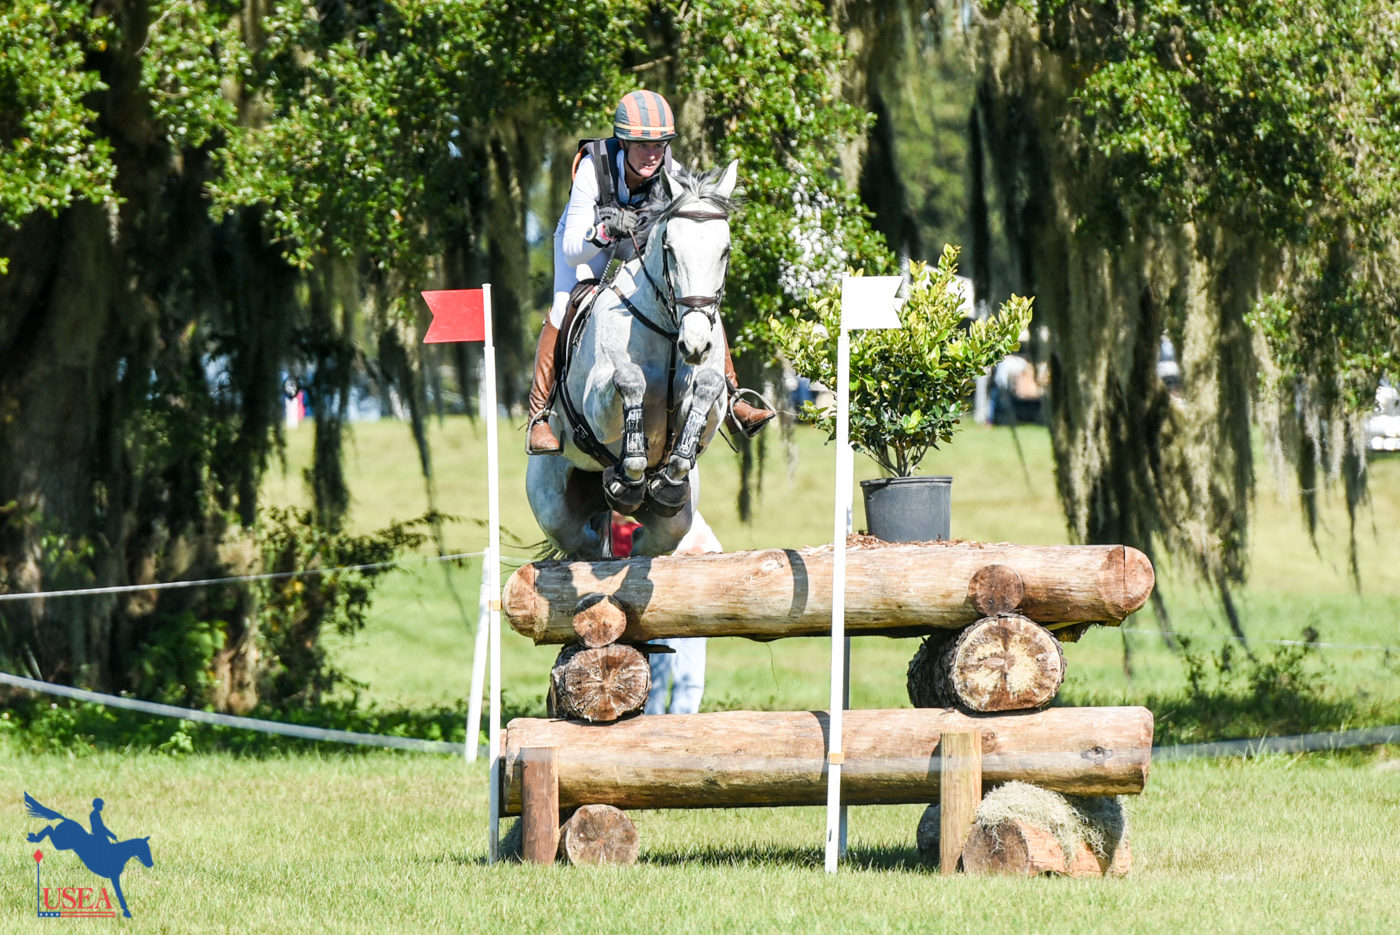 CCI3* - 2nd - Lauren Kieffer and Paramount Importance